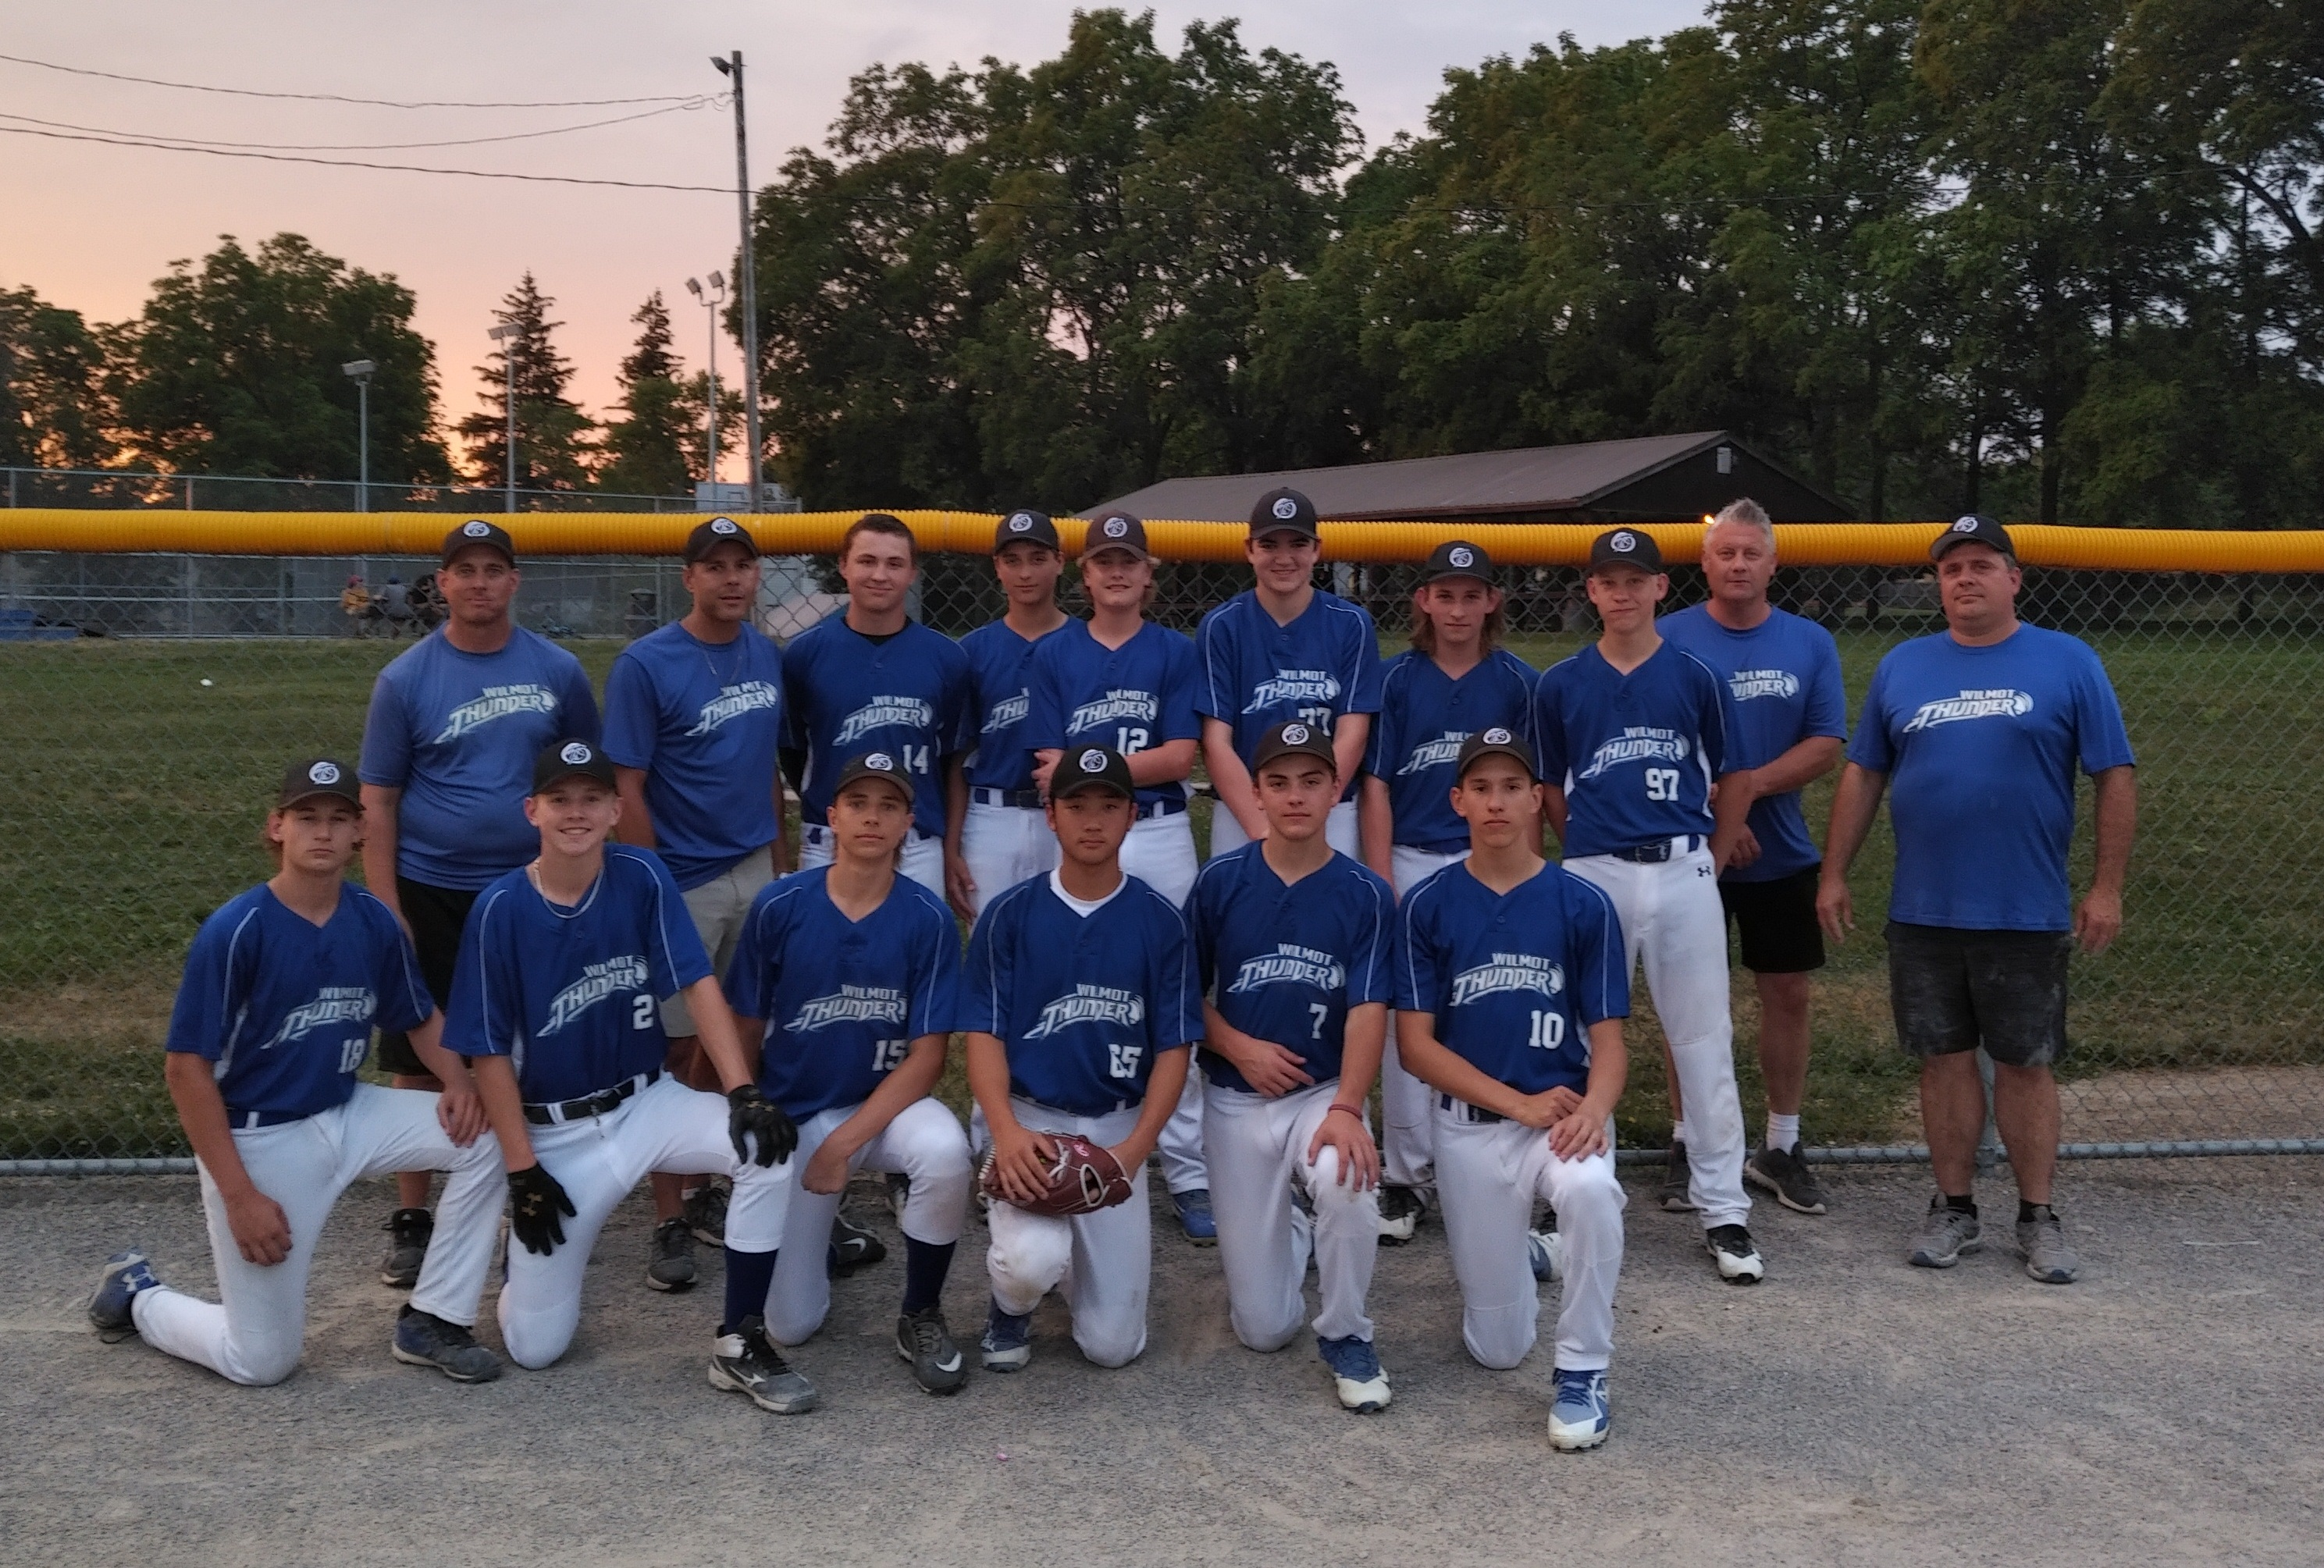 Wilmot Thunder U16 - 6th at Elims